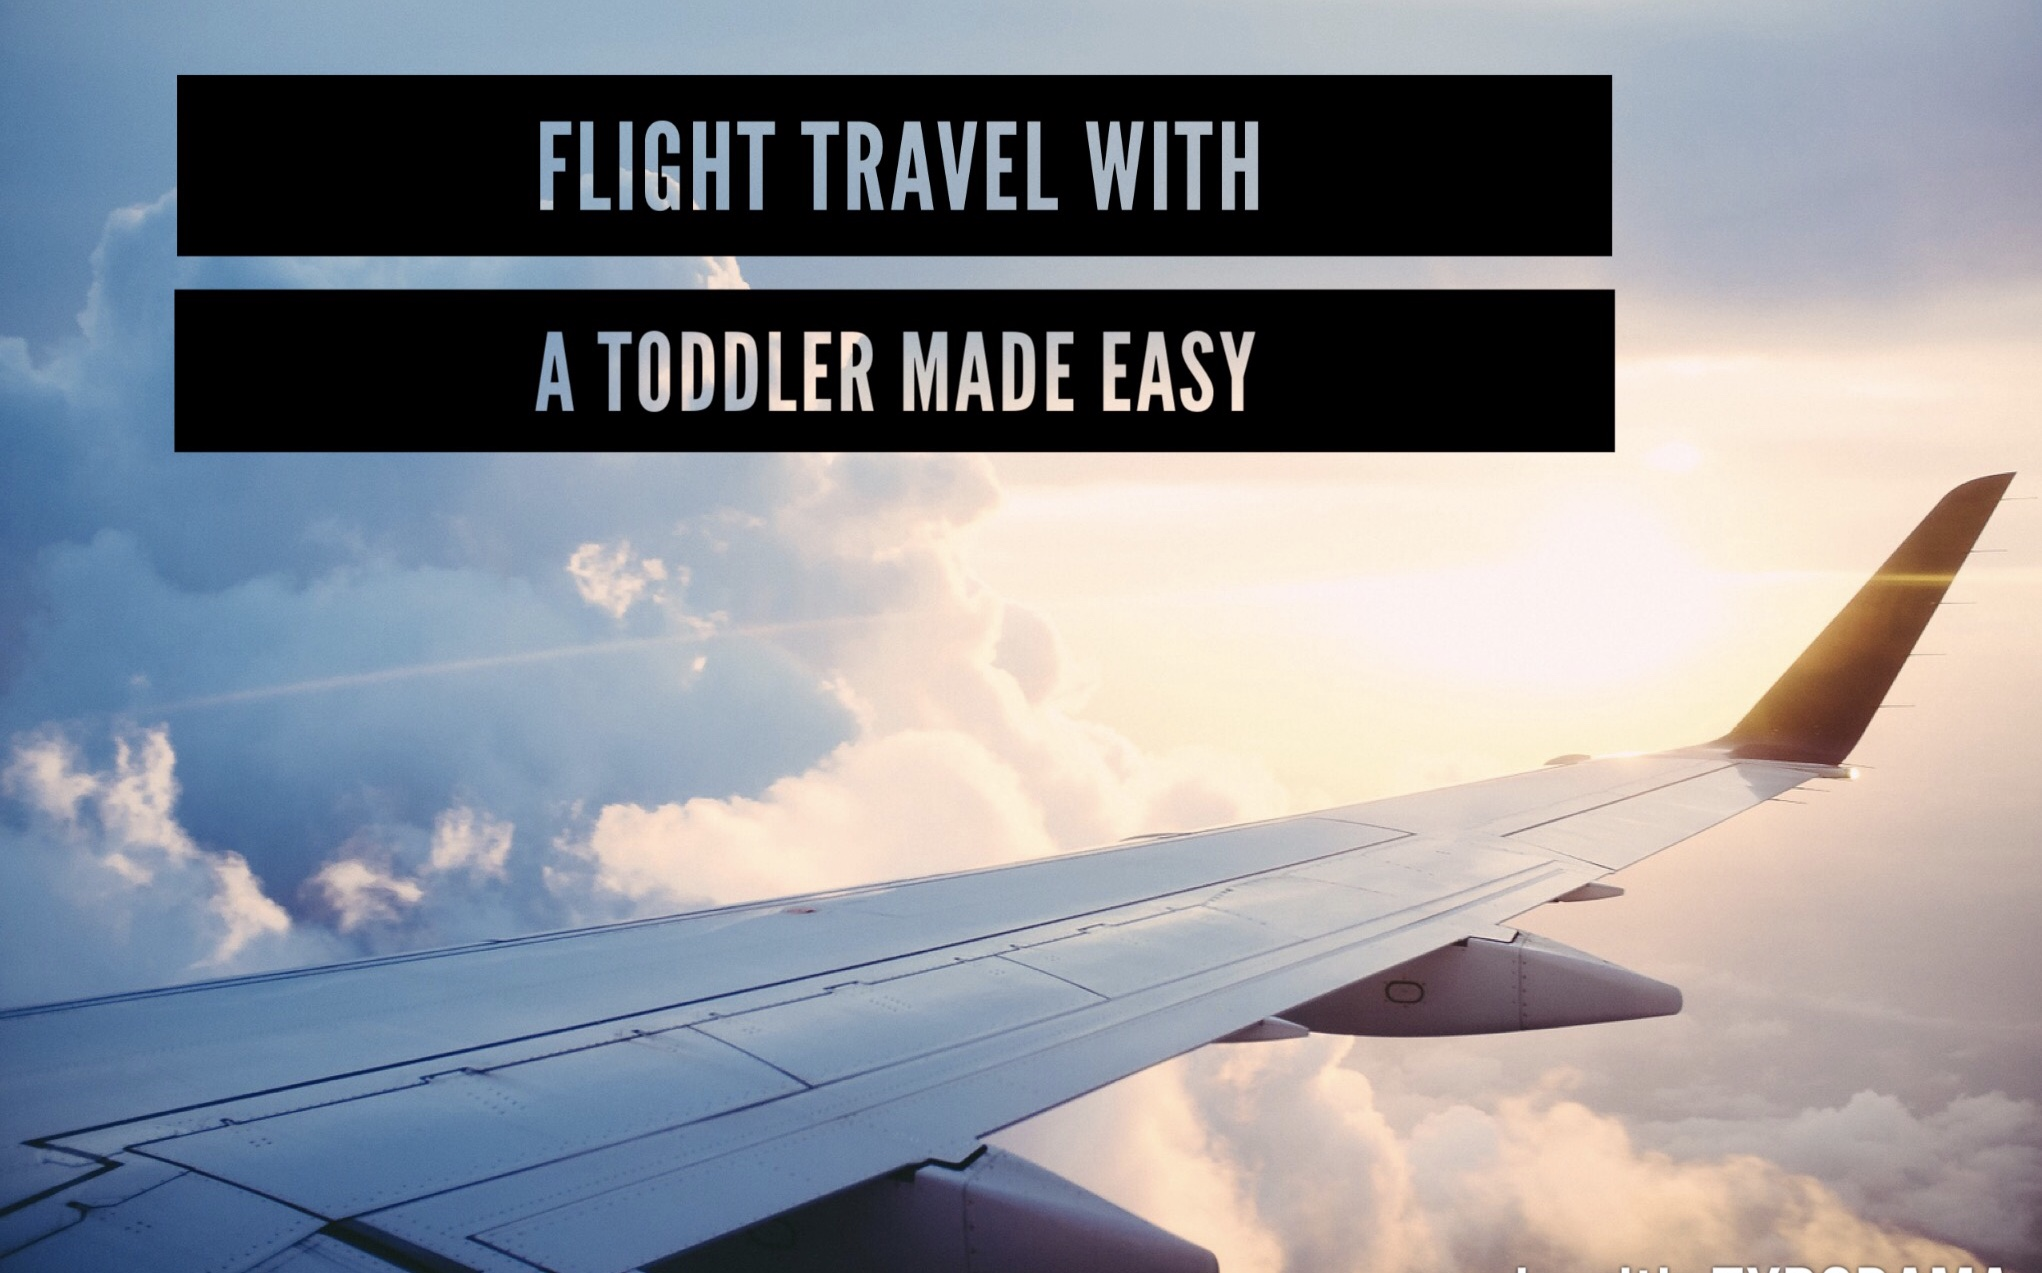 Flight Travel With a Toddler Made Easy